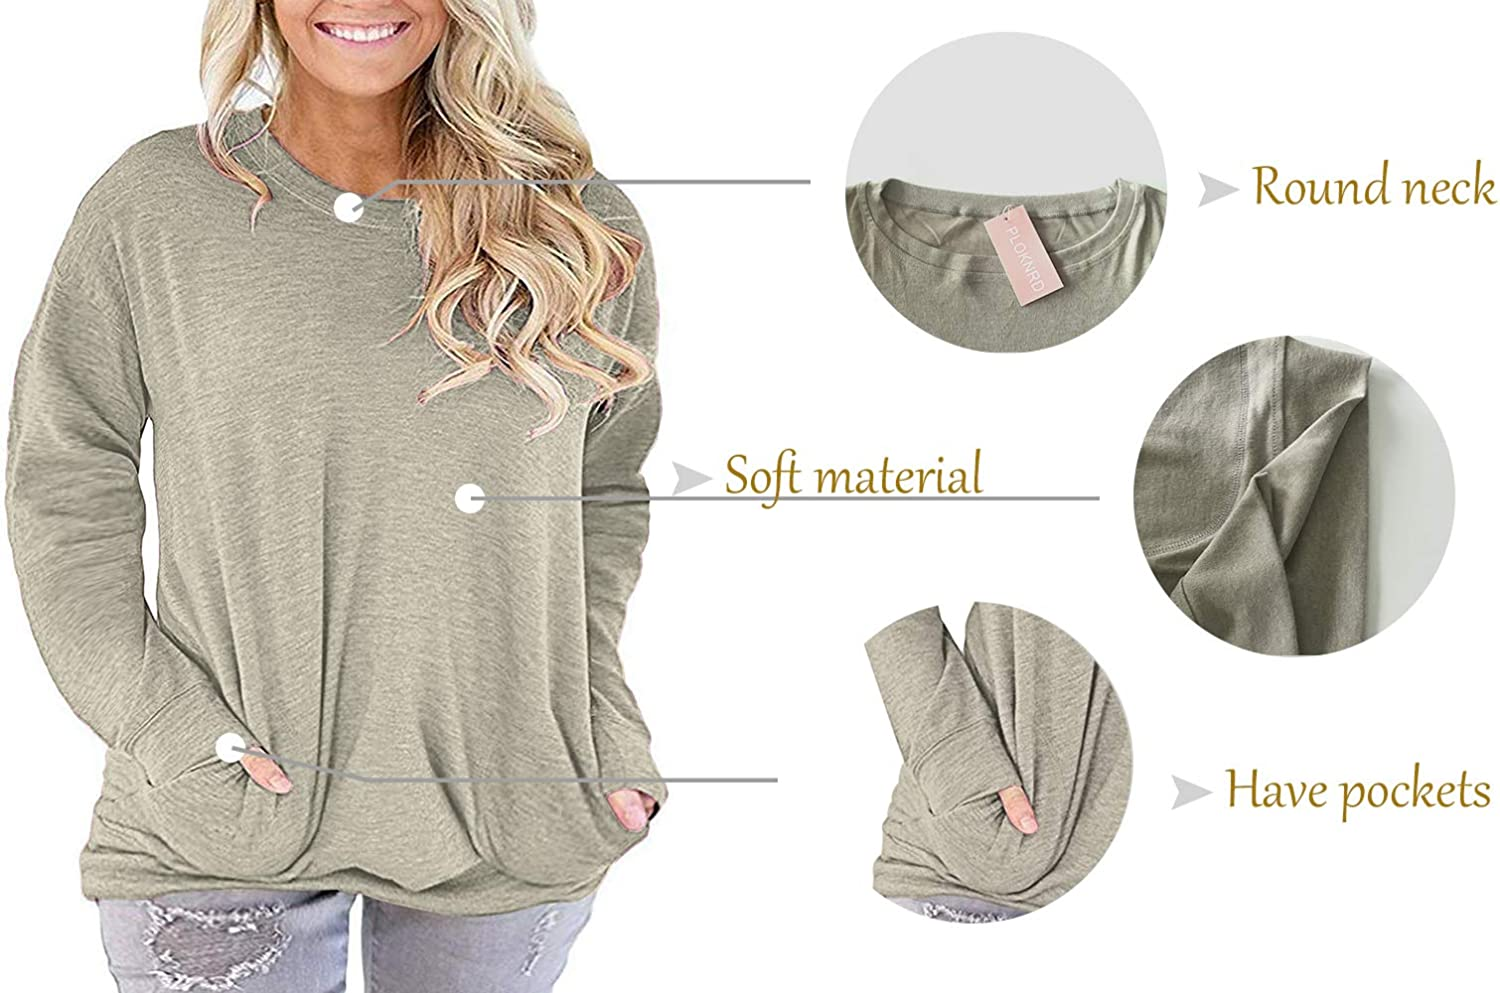 PLOKNRD Women Plus Size Casual Round Neck Long Sleeve Fit Tunic Top Baggy Comfy Blouse with Pockets